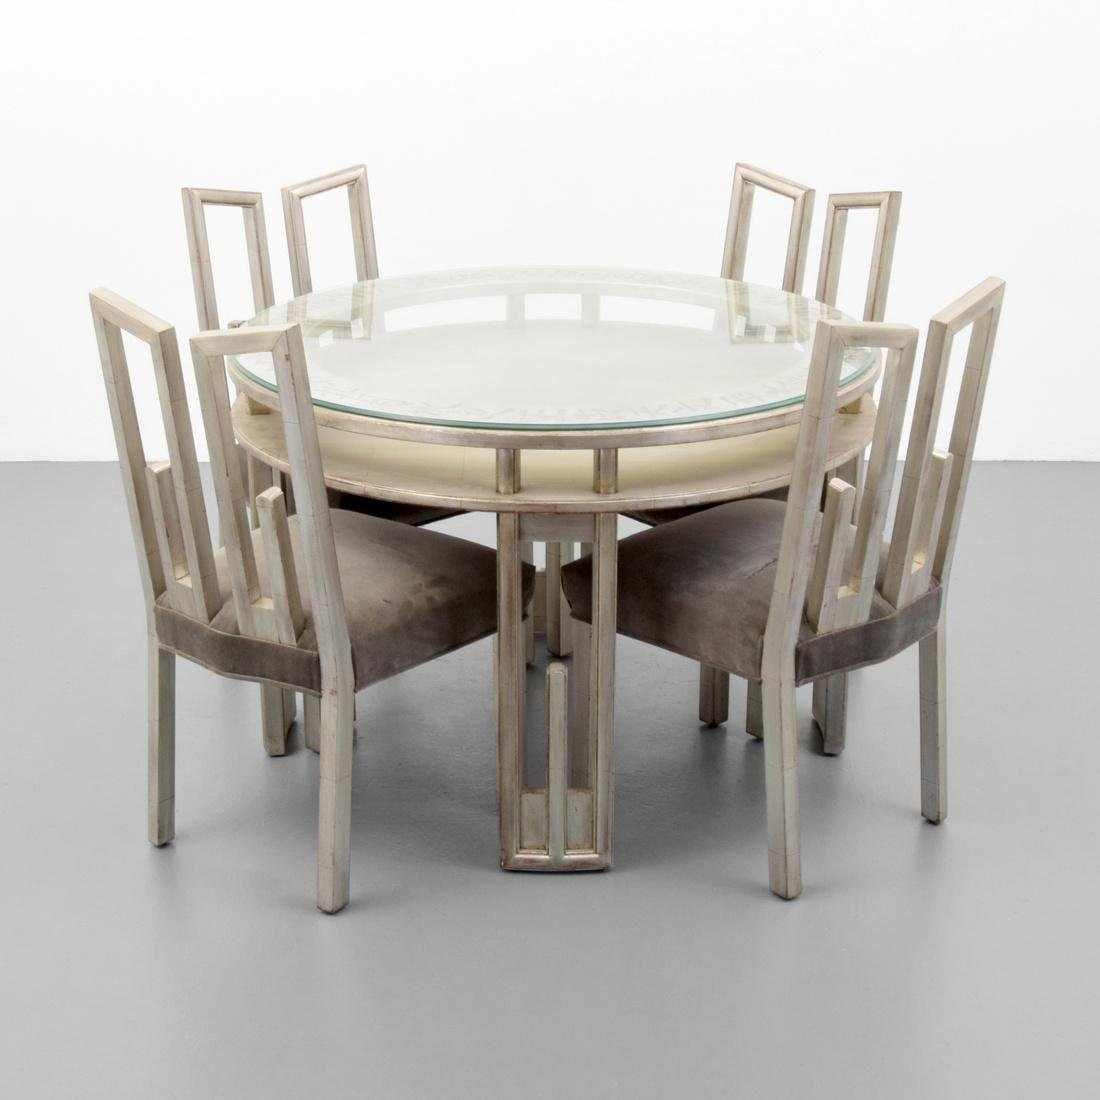 James Mont Dining Table & Set of 4 Chairs